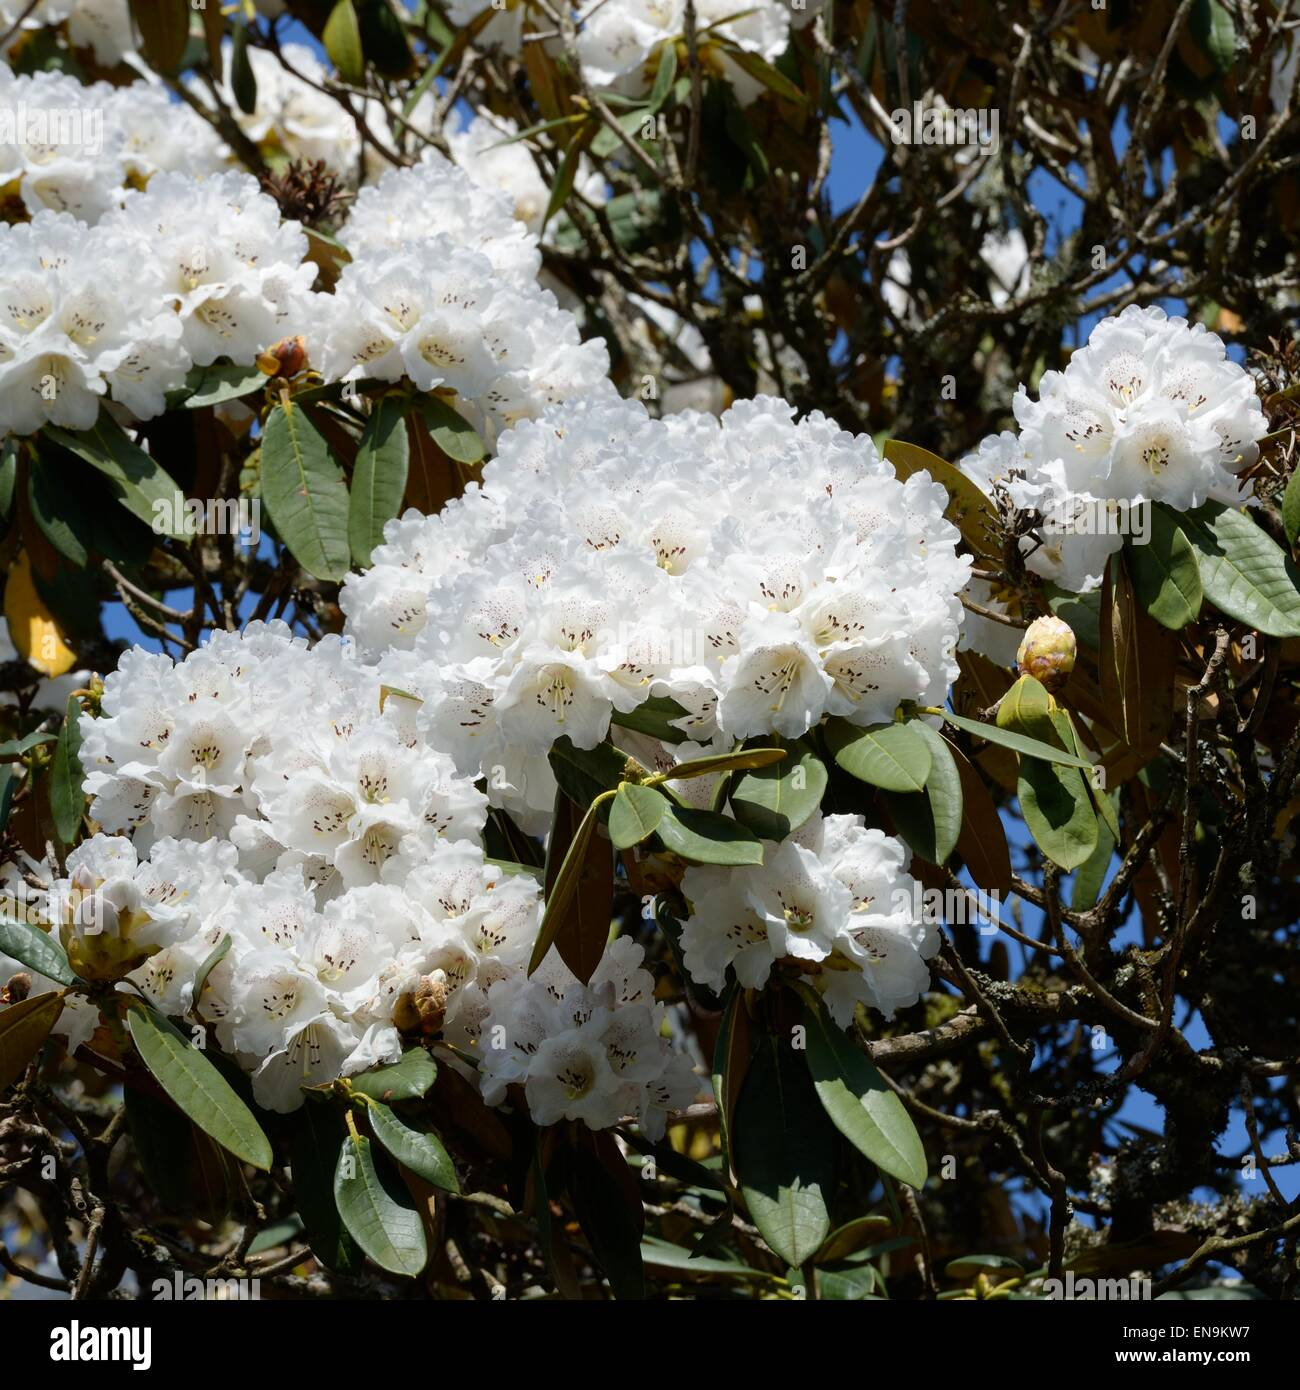 white rhododendron cunningham 39 s white variant bush in a. Black Bedroom Furniture Sets. Home Design Ideas